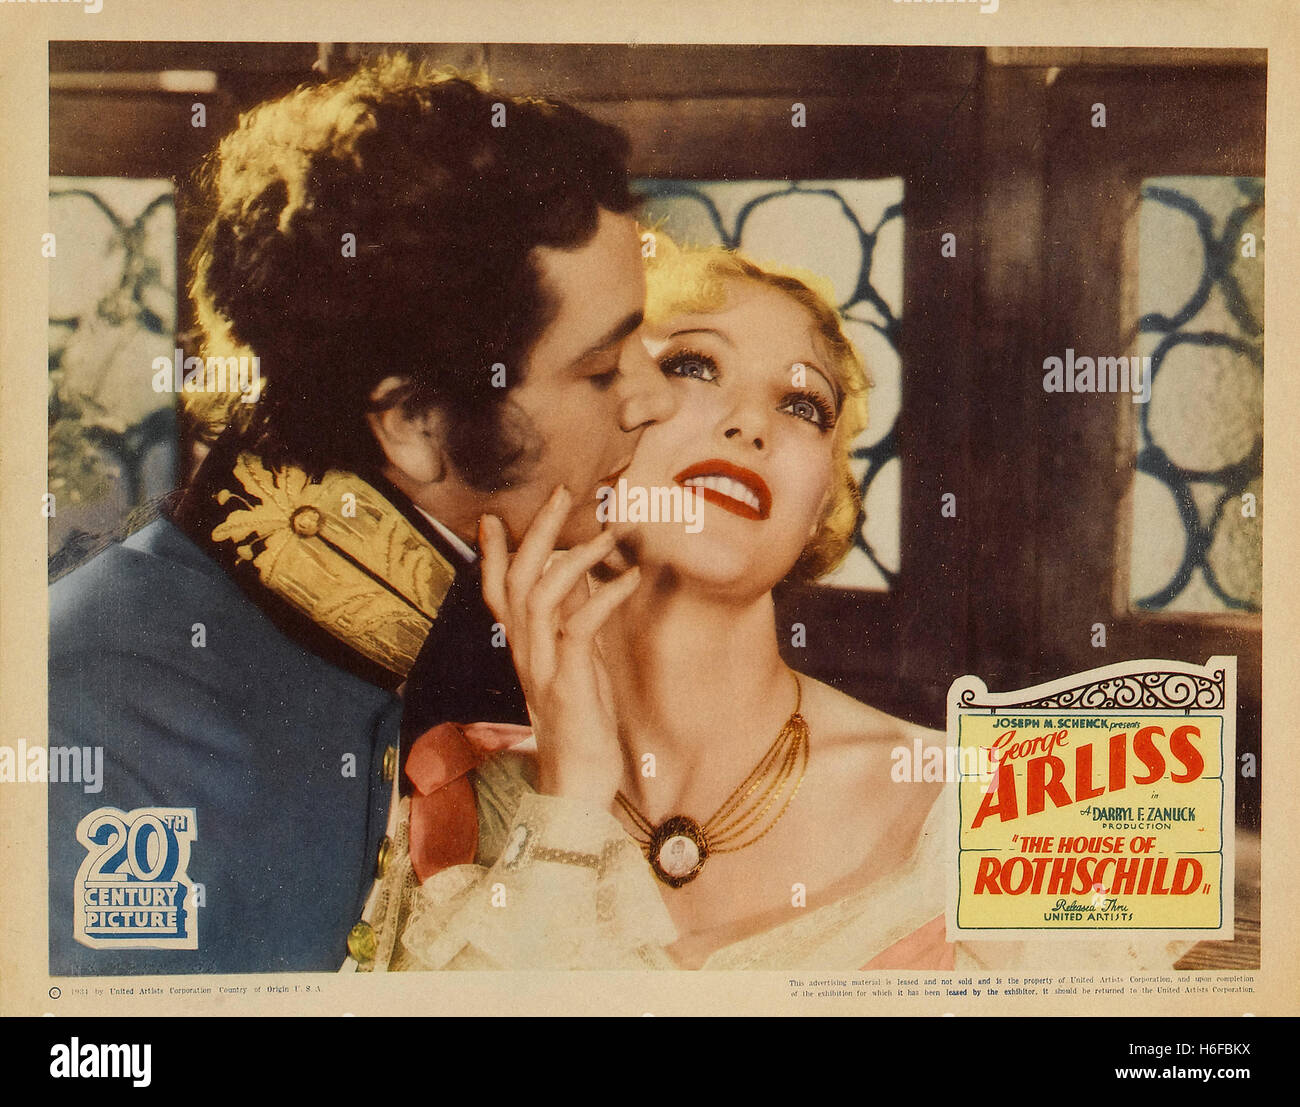 The House of Rothschild - Movie Poster - - Stock Image